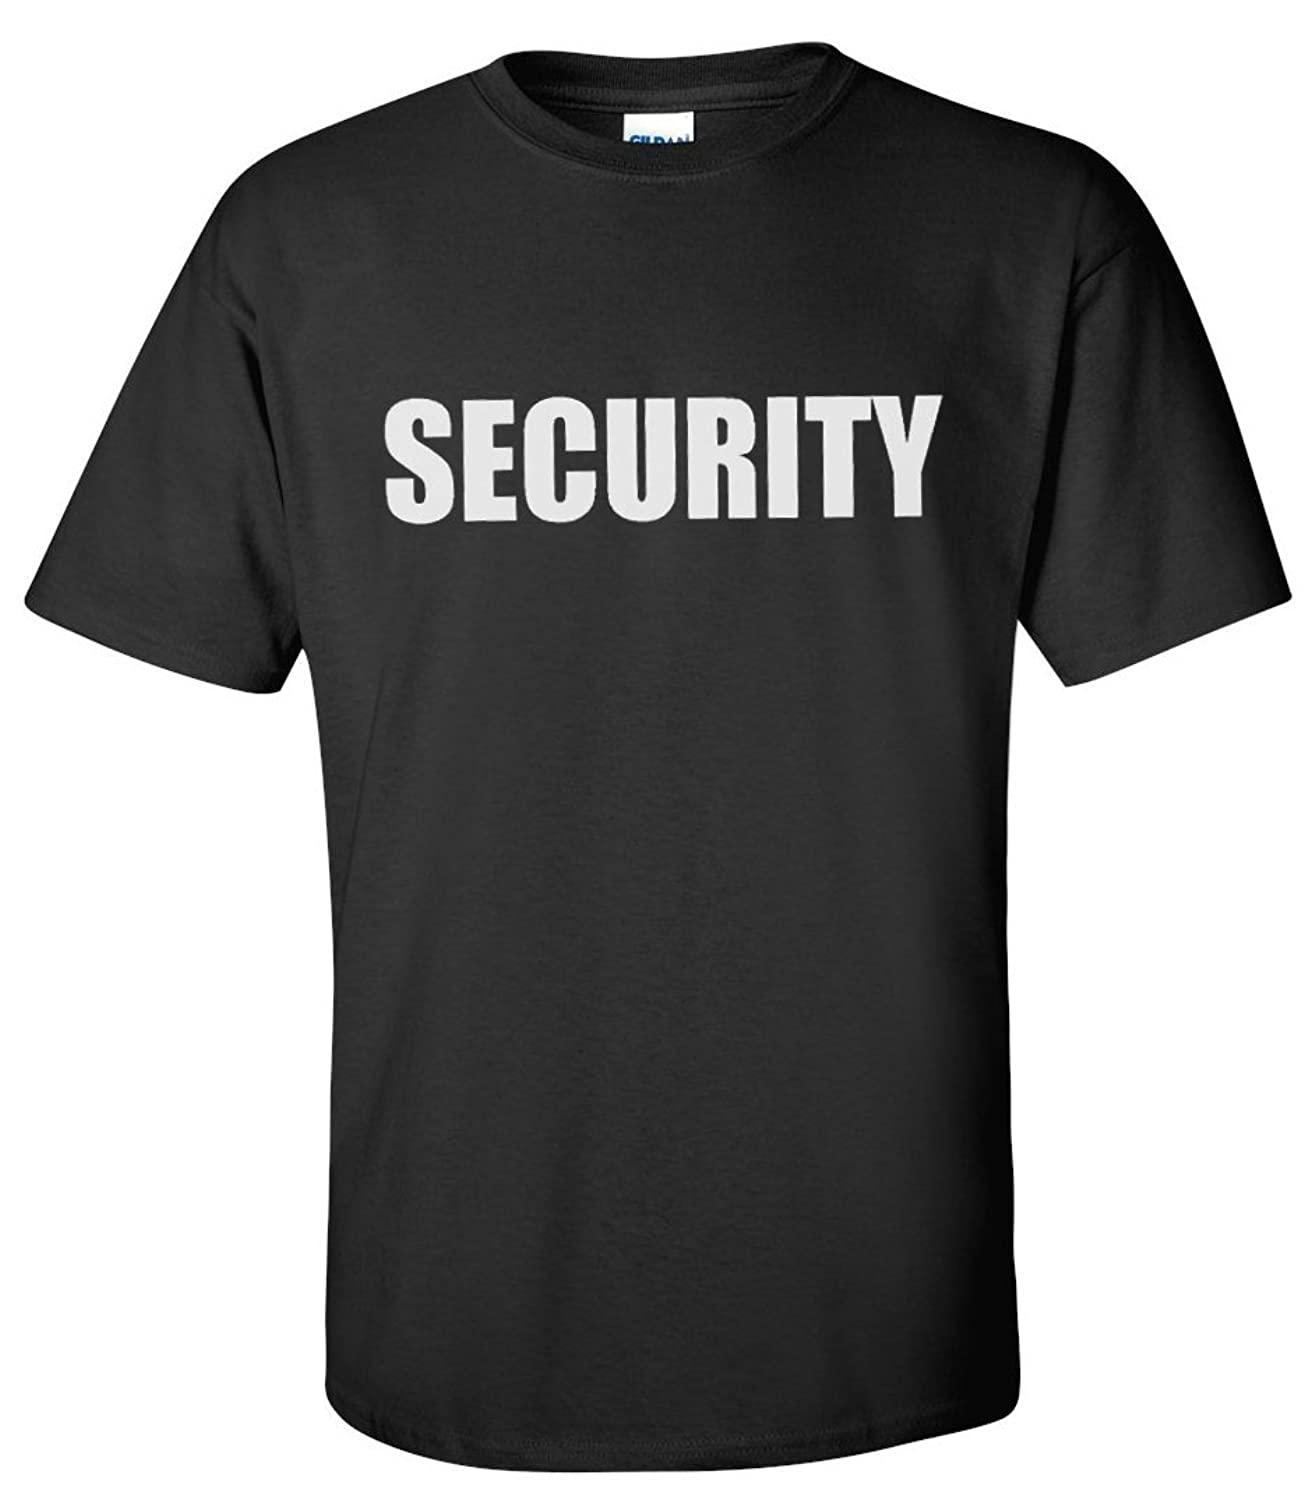 Black t shirt security - Amazon Com Security Event Safety Guard Two Side Print Black W Tall Sizes Unisex T Shirt Clothing